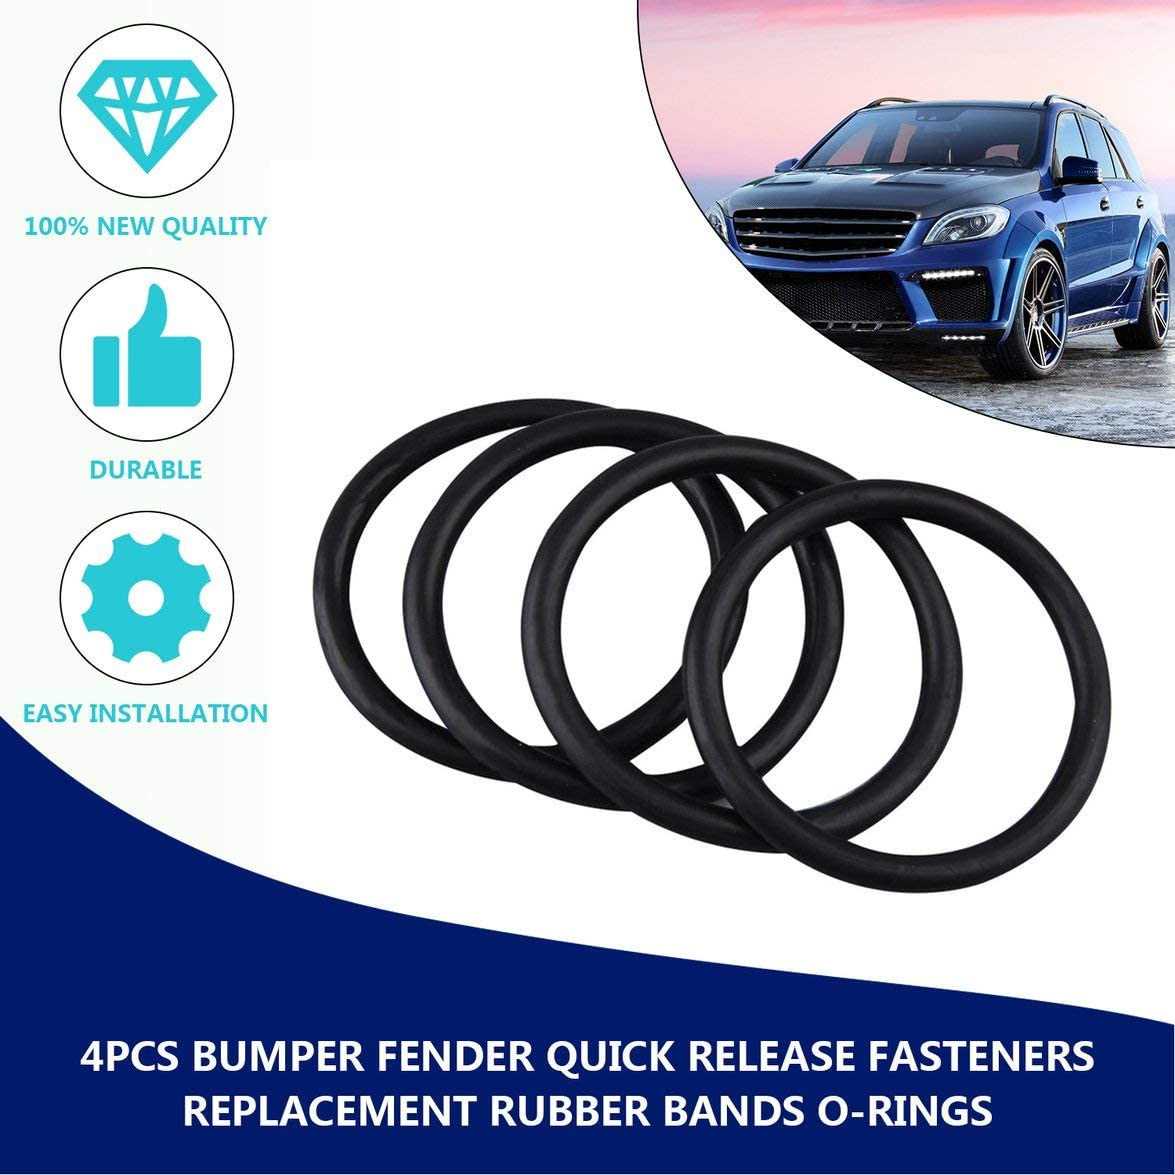 4pcs Bumper Fender Quick Release Fasteners Replacement Rubber Bands O-Rings